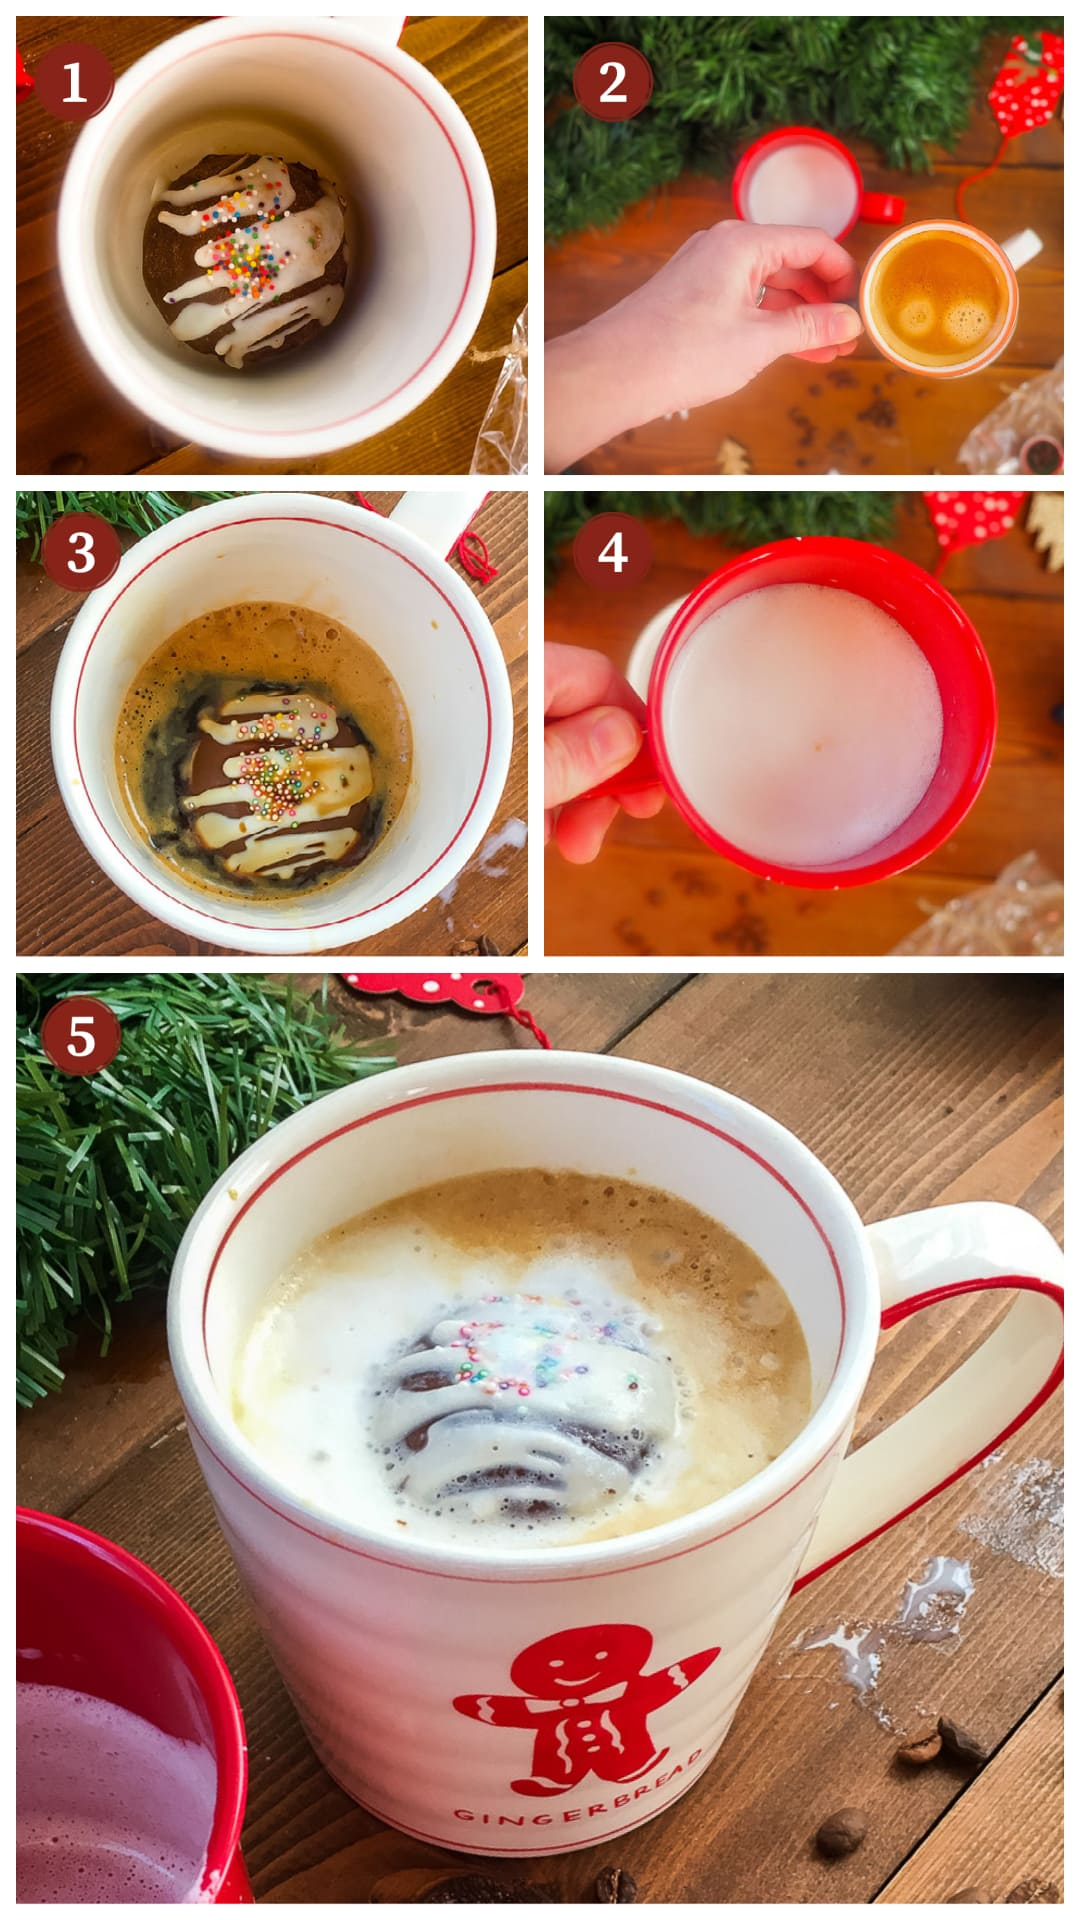 A collage of images showing how to make a hot chocolate mocha coffee with a hot cocoa bomb, steps 1 - 5.